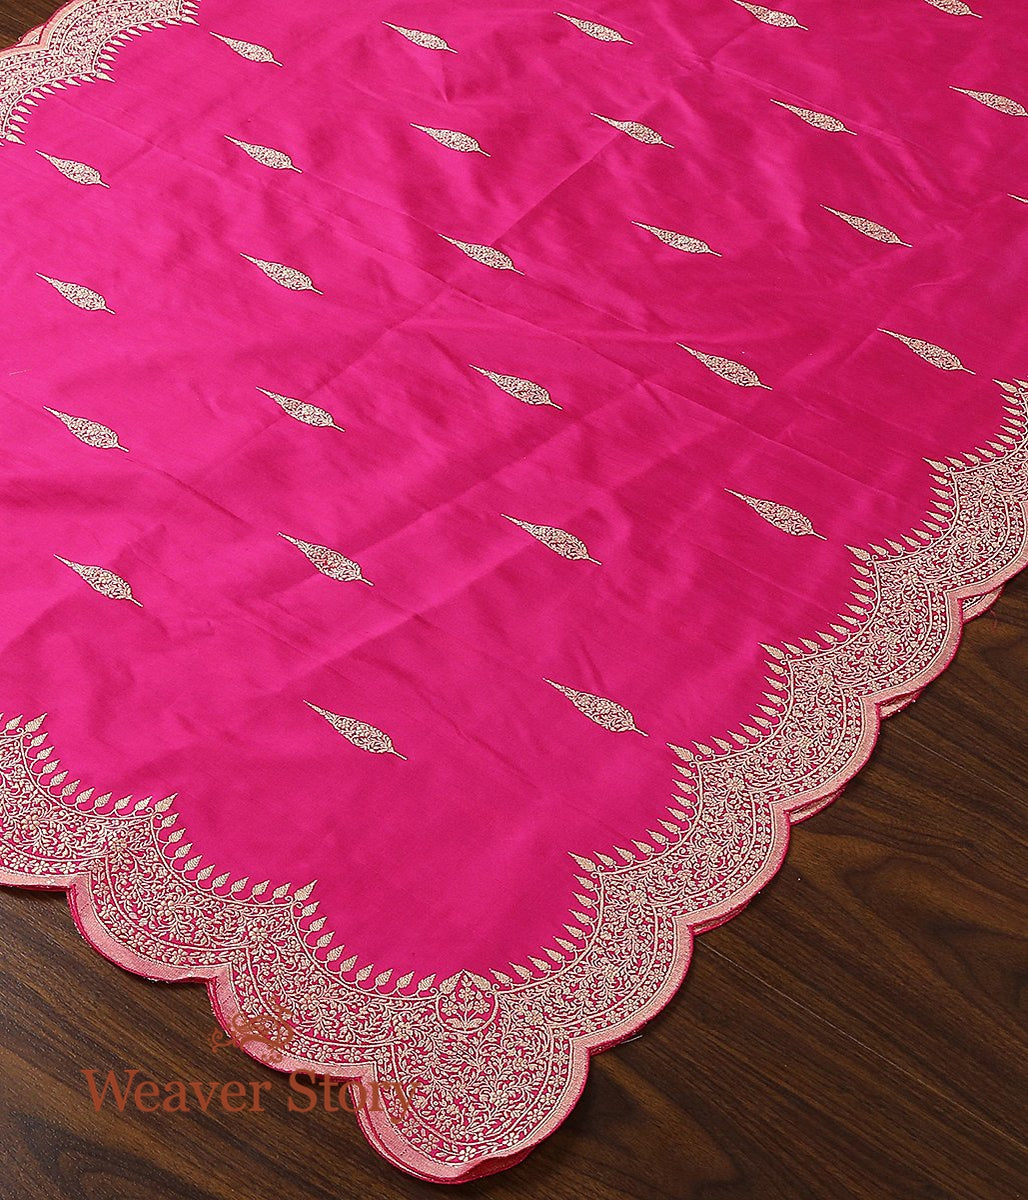 Handwoven Rani Pink Banarasi Dupatta with Scallop Borders